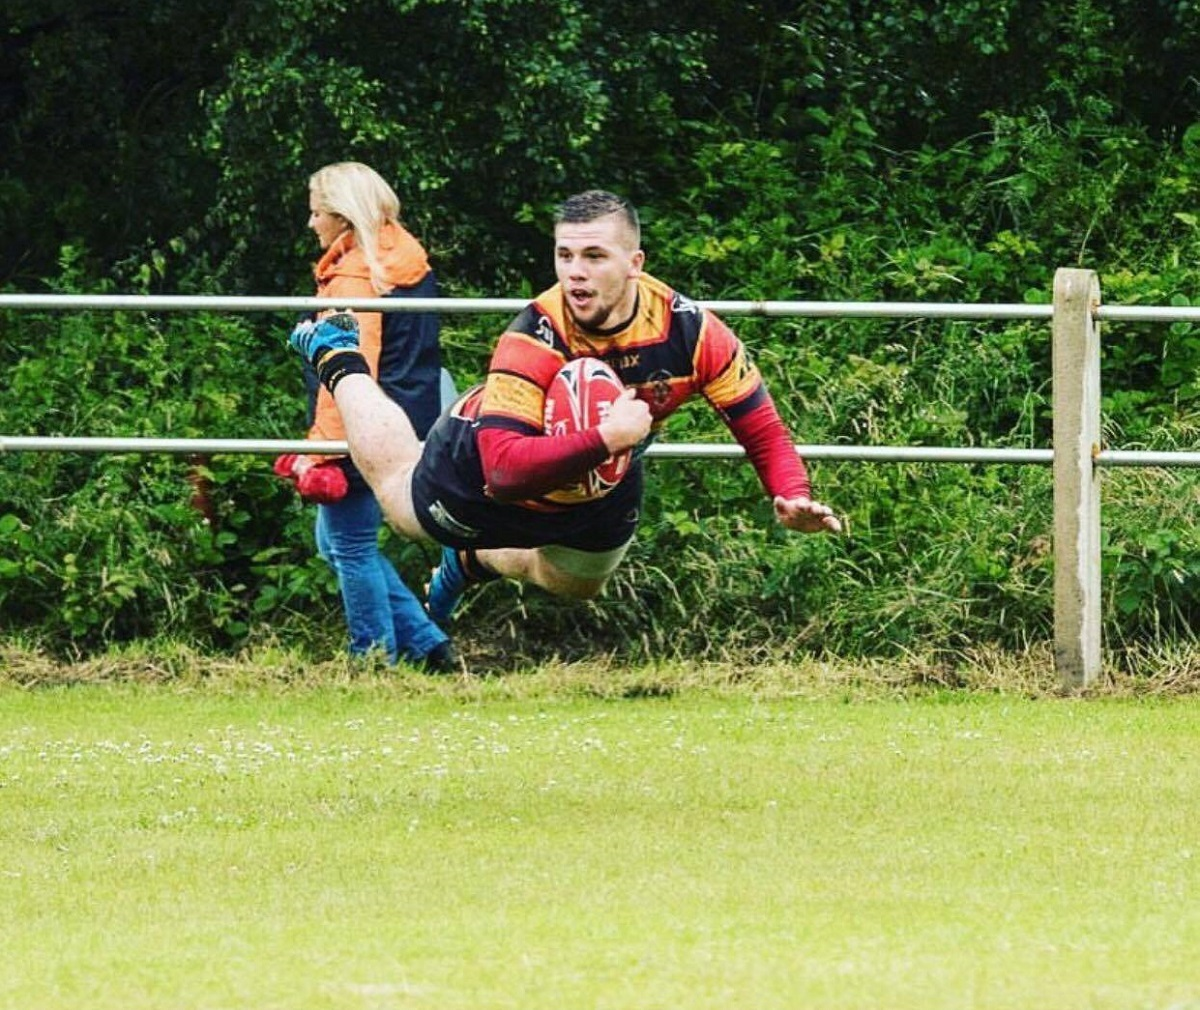 Brighouse Rangers centre Jordan Sild dives in to score against Upton – Picture: Brighouse Rangers